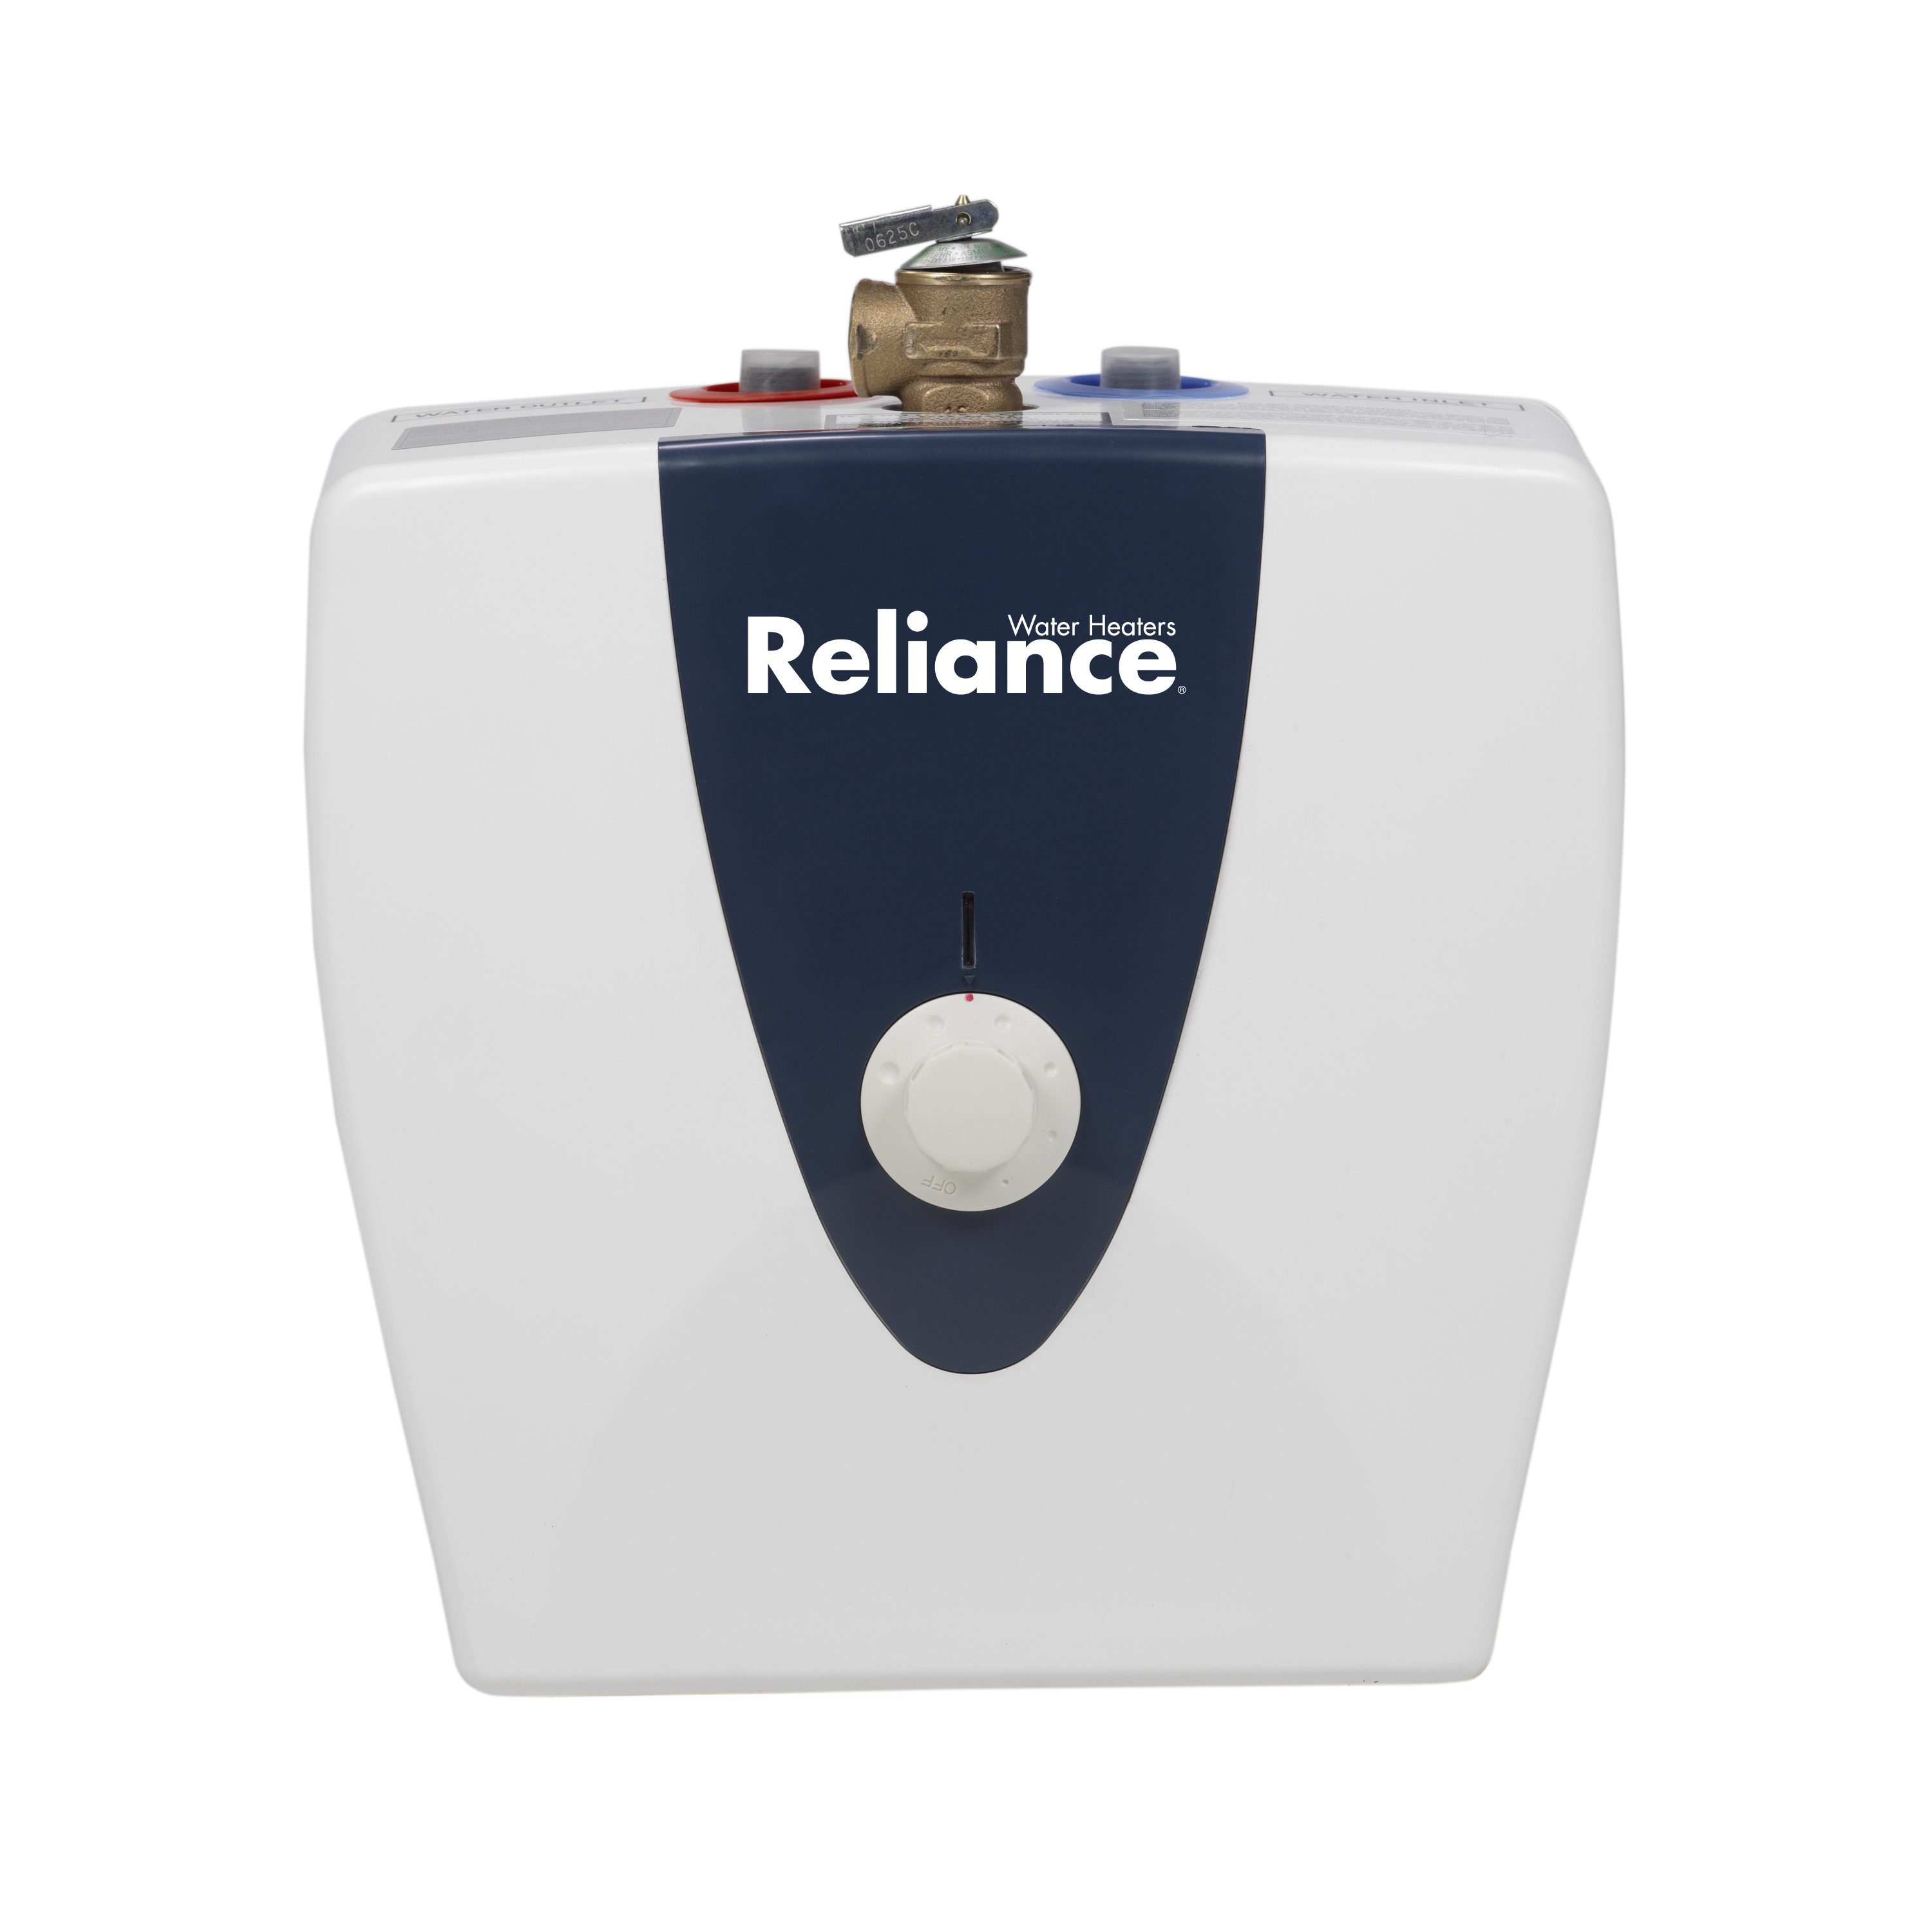 Reliance Water Heater Literature   Owner's Manuals ...